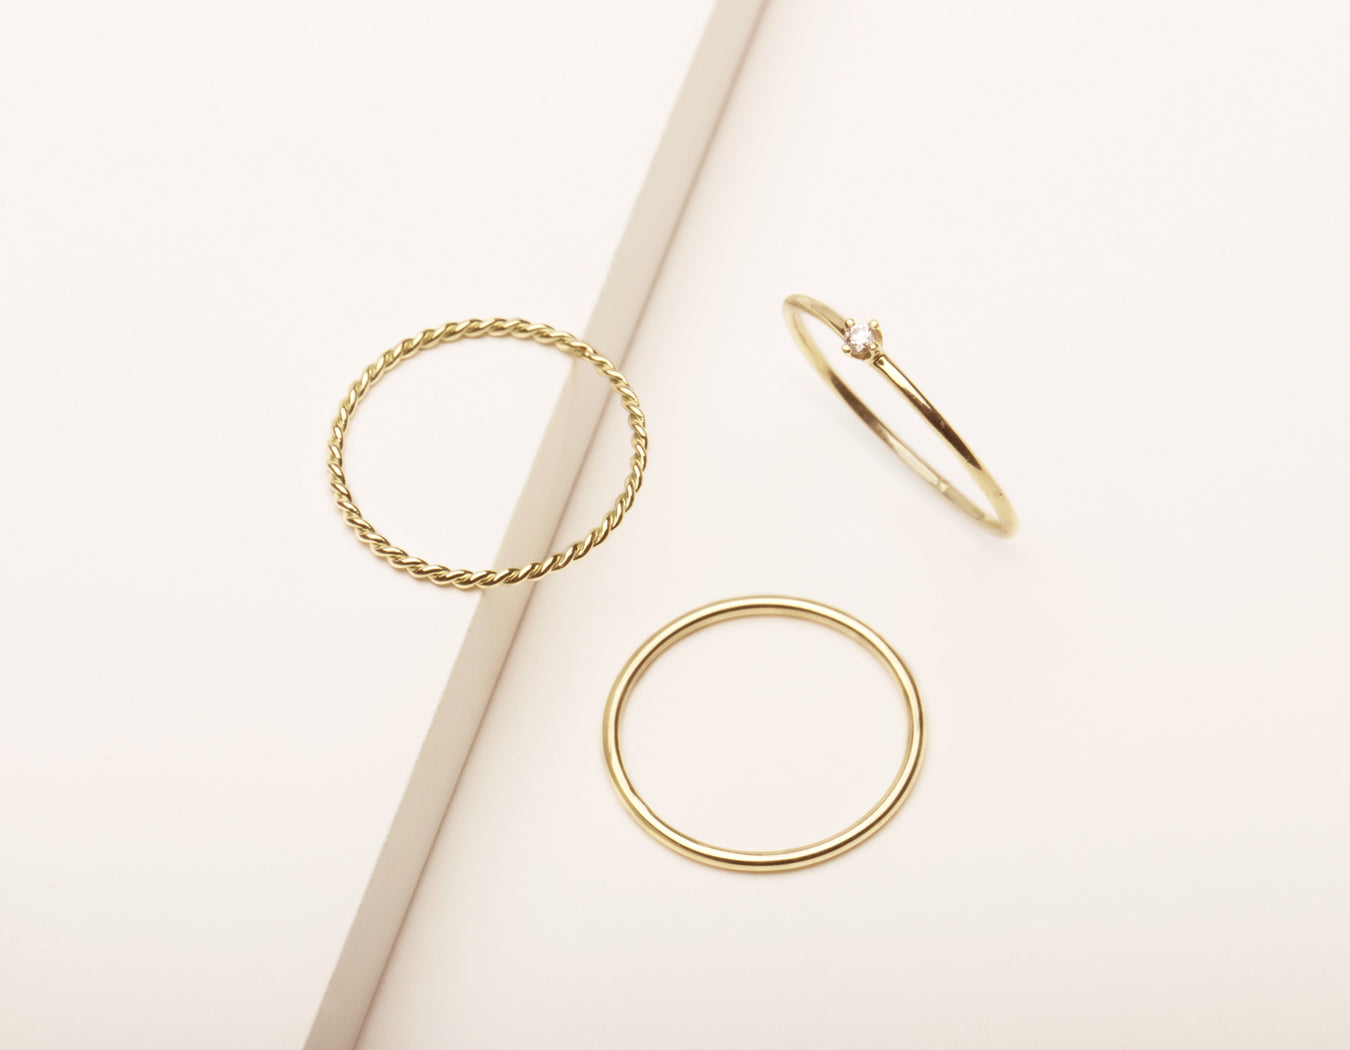 Vrai and Oro simple classic Trio Bundle Rings 14k solid gold Skinny Stacking Round Diamond Stacker and Twist Ring, 14K Yellow Gold